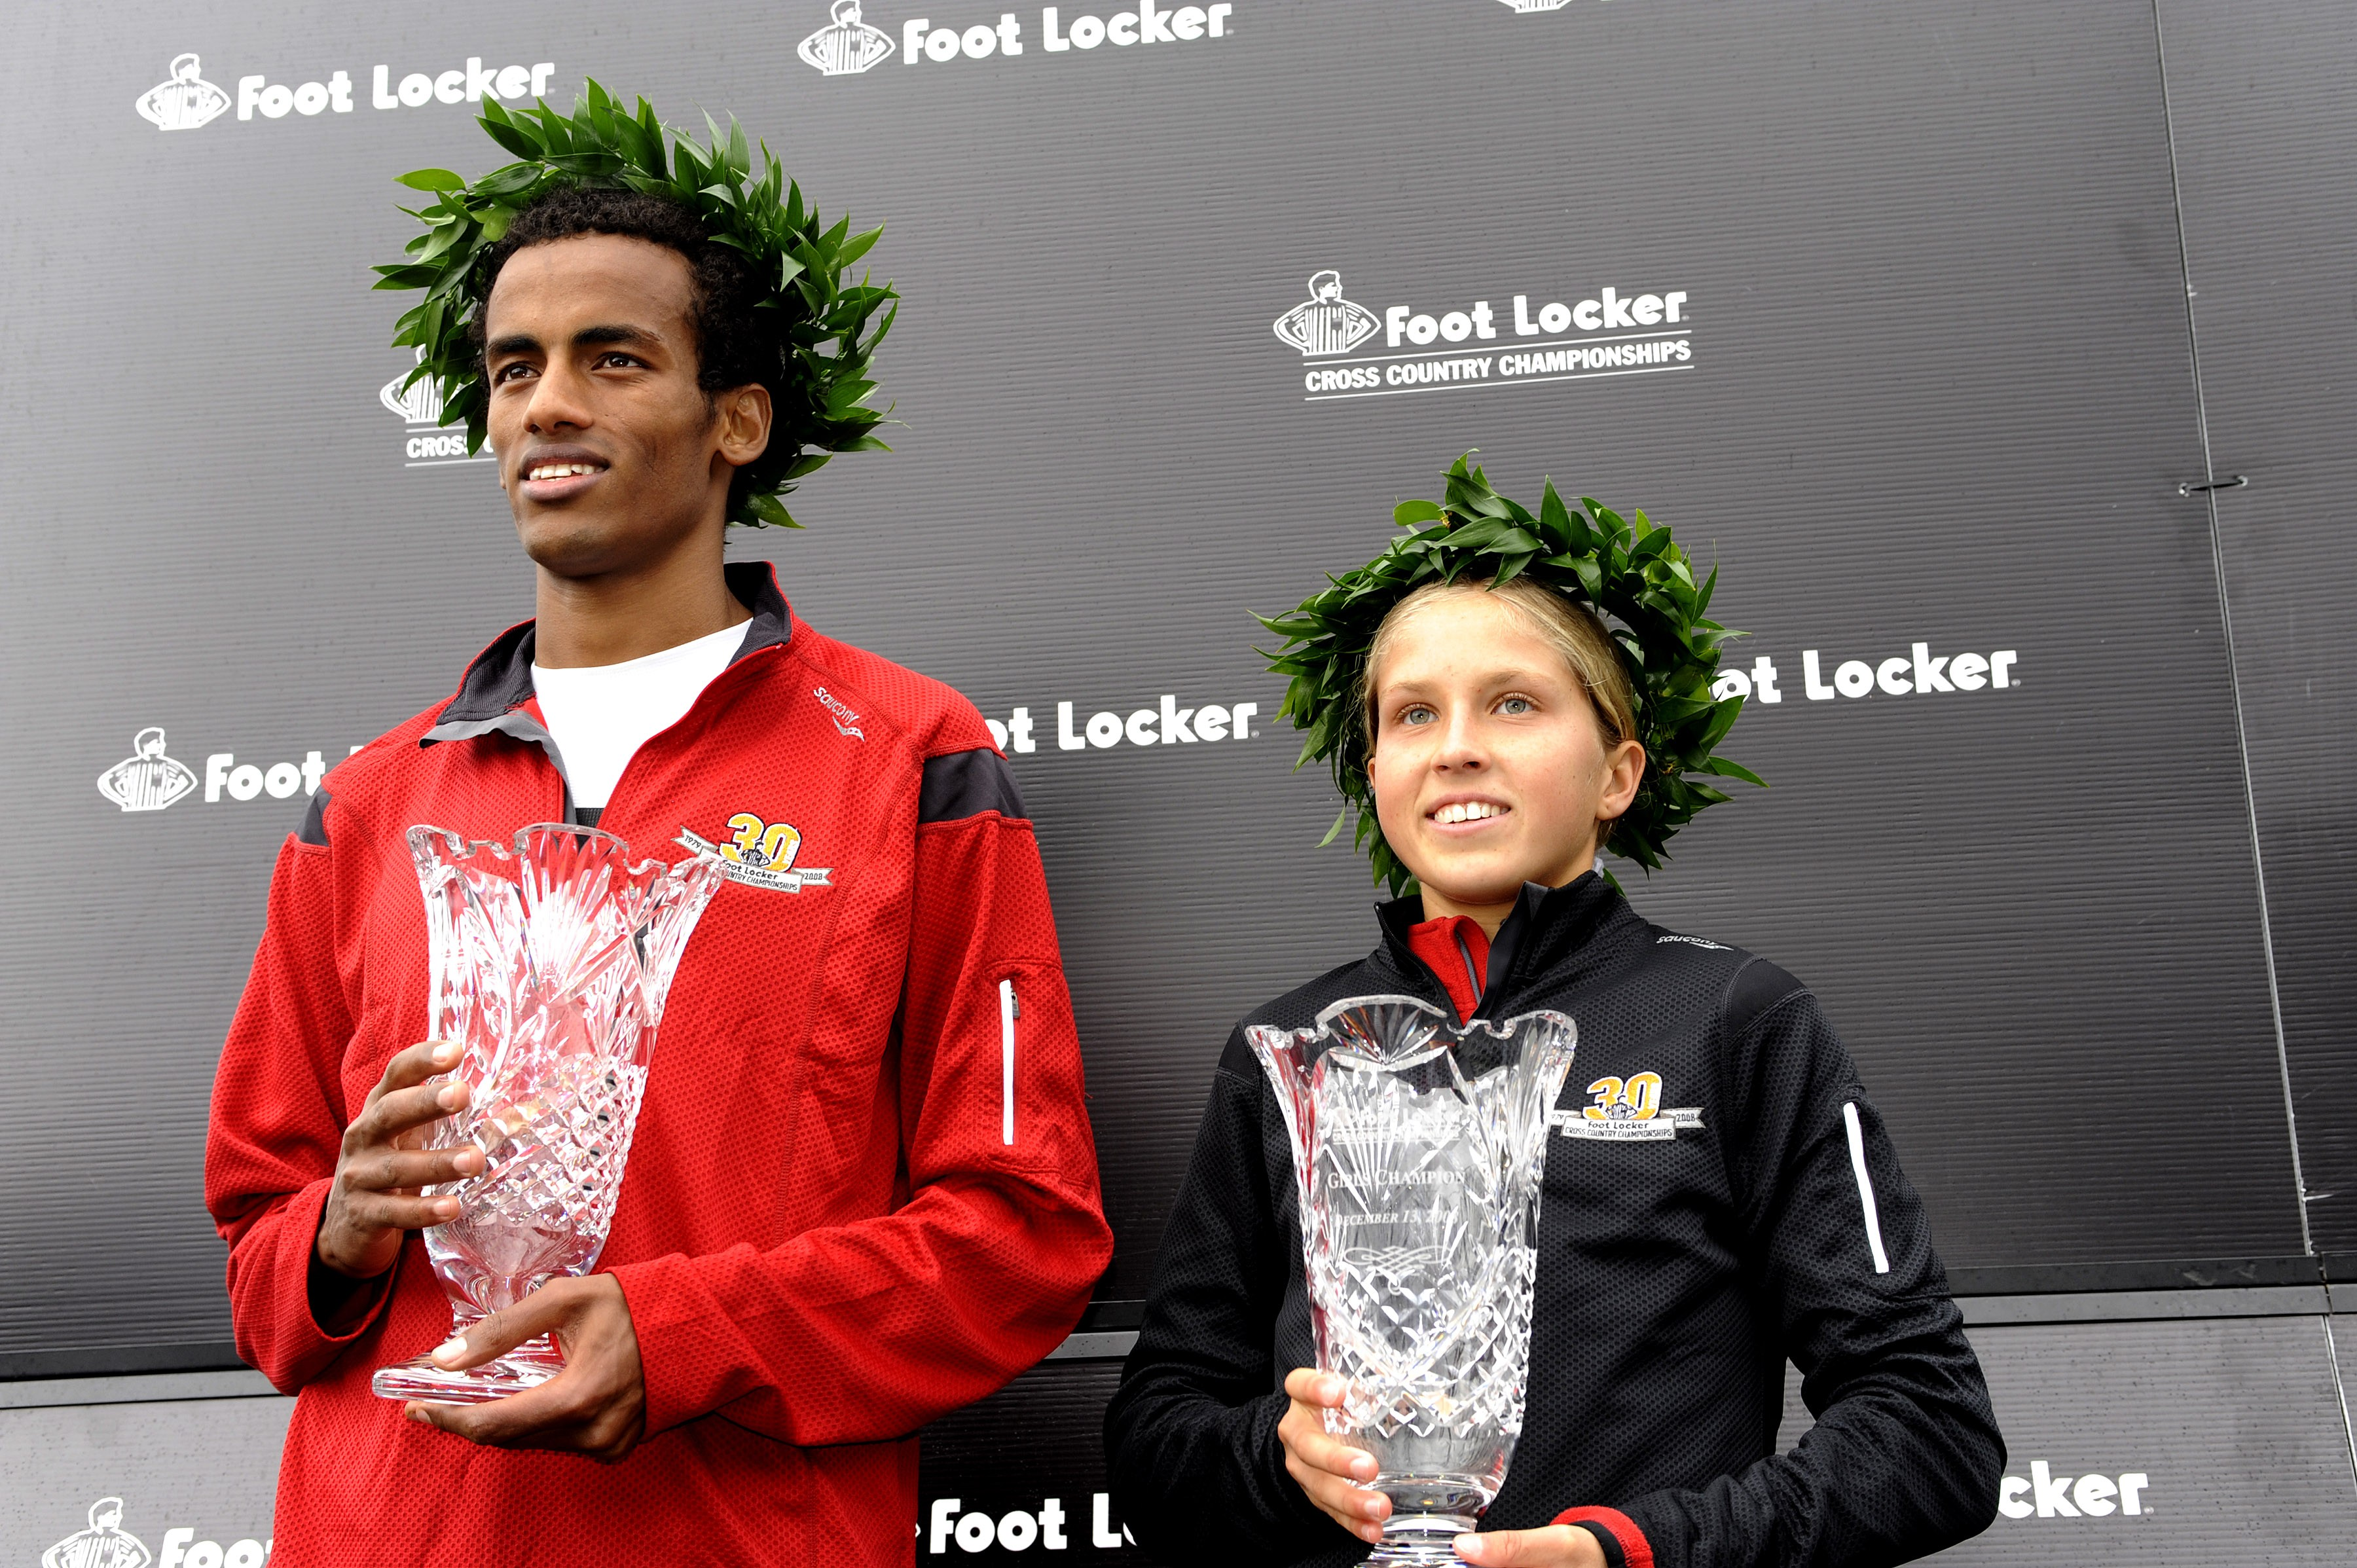 a4bc1d325 ... been a stepping stone to greatness…many Olympians and professional  athletes began their running career at the Foot Locker Cross Country  Championships.